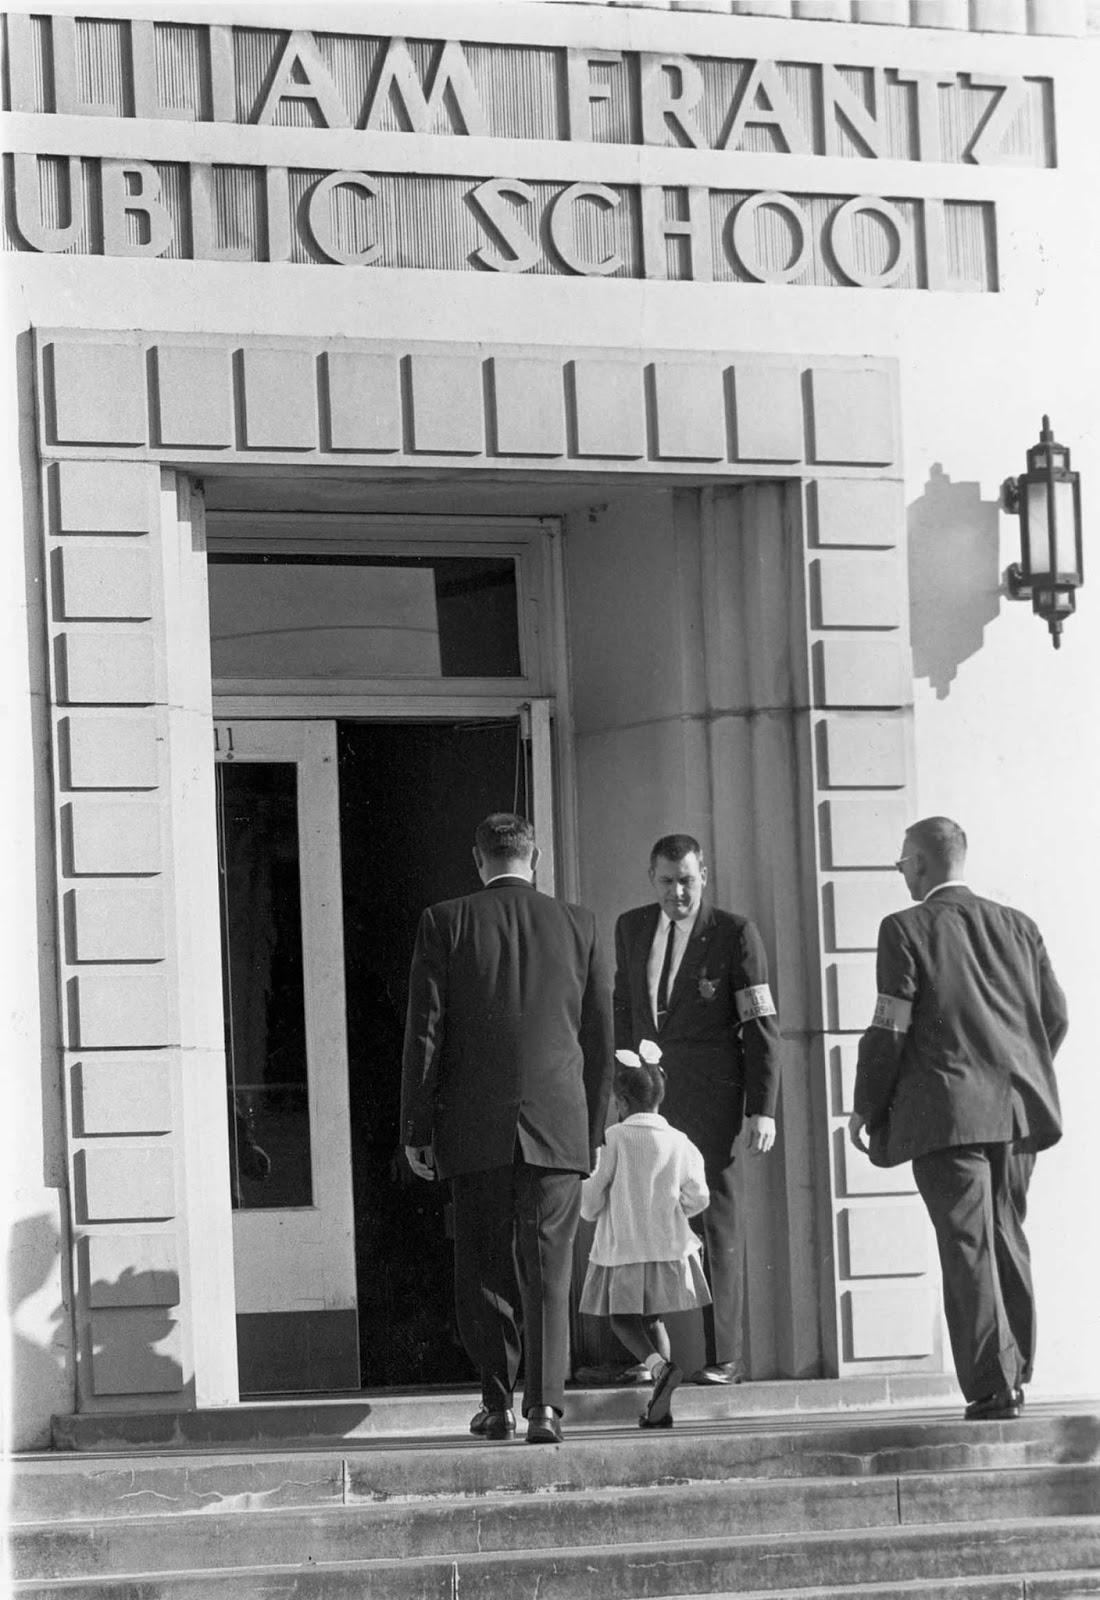 Guarded by three Deputy U.S. Marshals, including Charles Burks, top center, young Ruby Bridges enters newly integrated William Frantz school in New Orleans, La. on Dec. 5, 1960 to begin her third week as the only black student in the school.